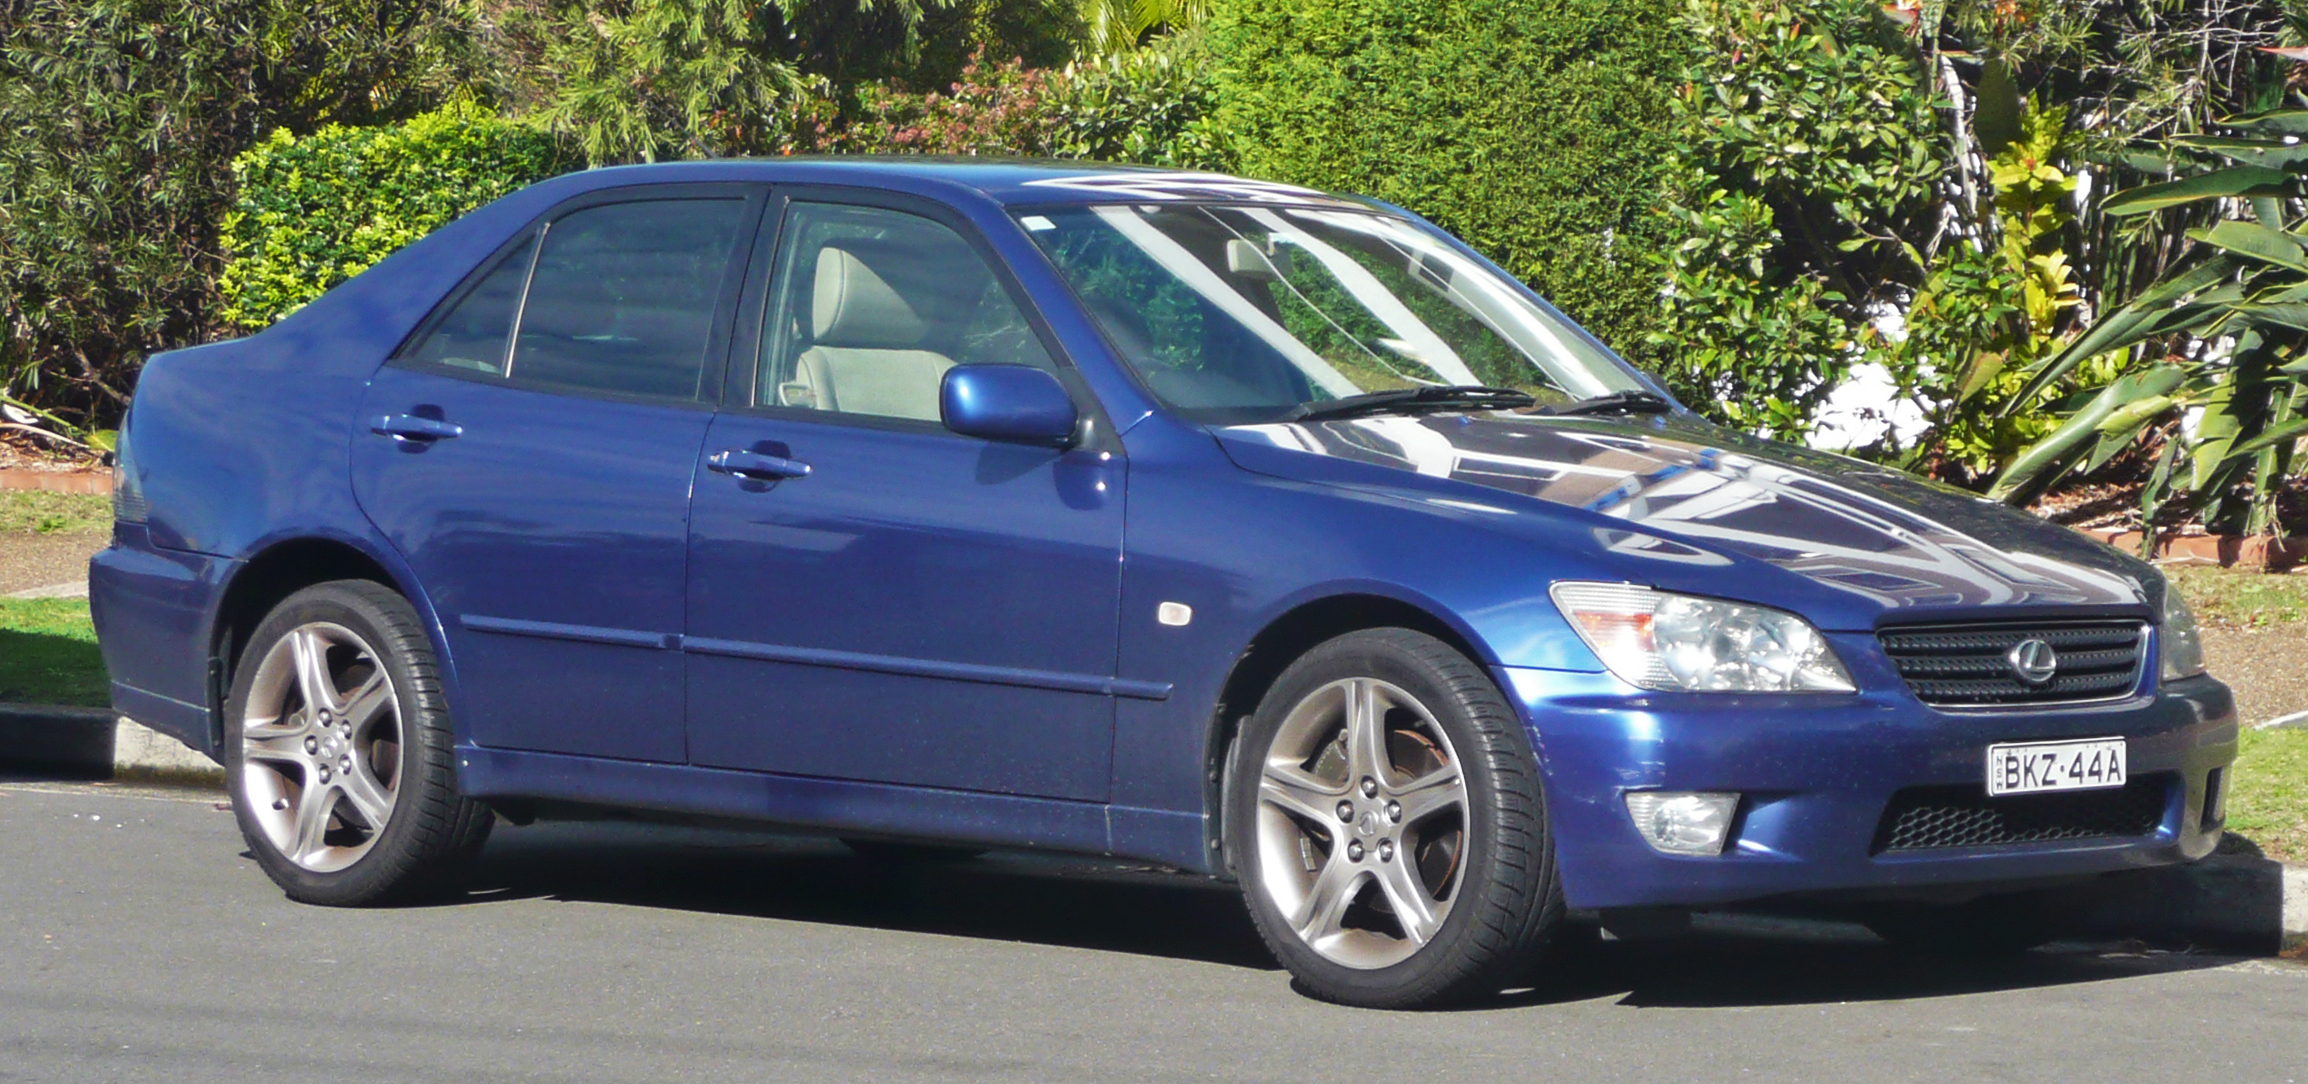 Lexus Is 200 >> File:1999-2005 Lexus IS 200 (GXE10R) sedan 01.jpg - Wikimedia Commons